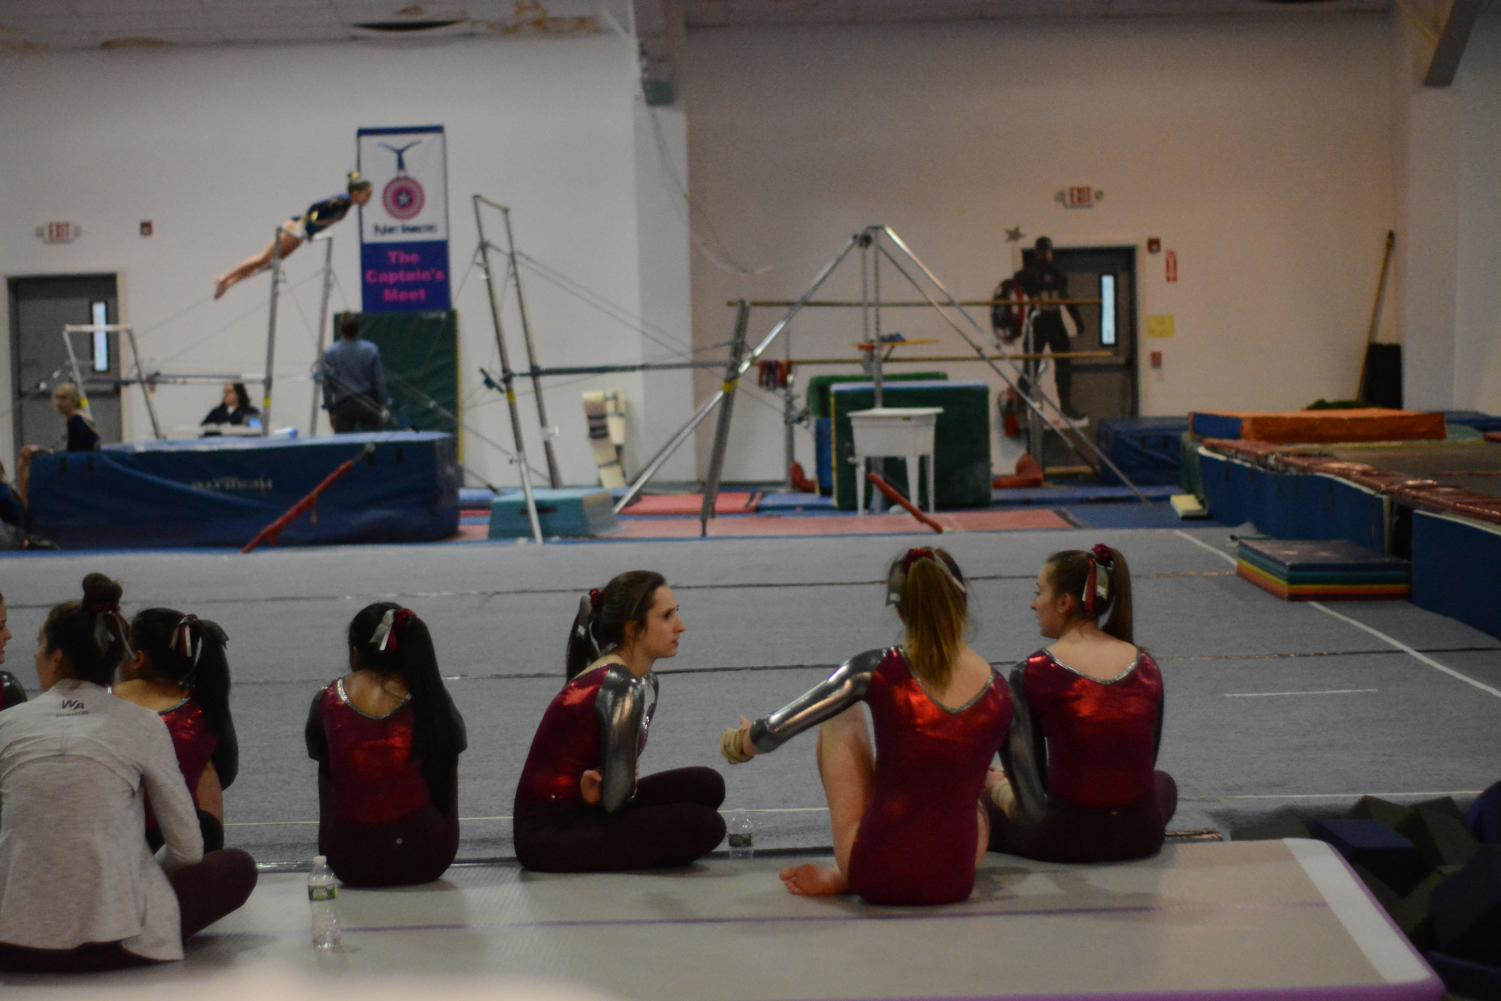 WA+gymnasts+talk+amongts+themselves+as+they+wait+for+their+turn+to+perform+in+the+on+floor+event.